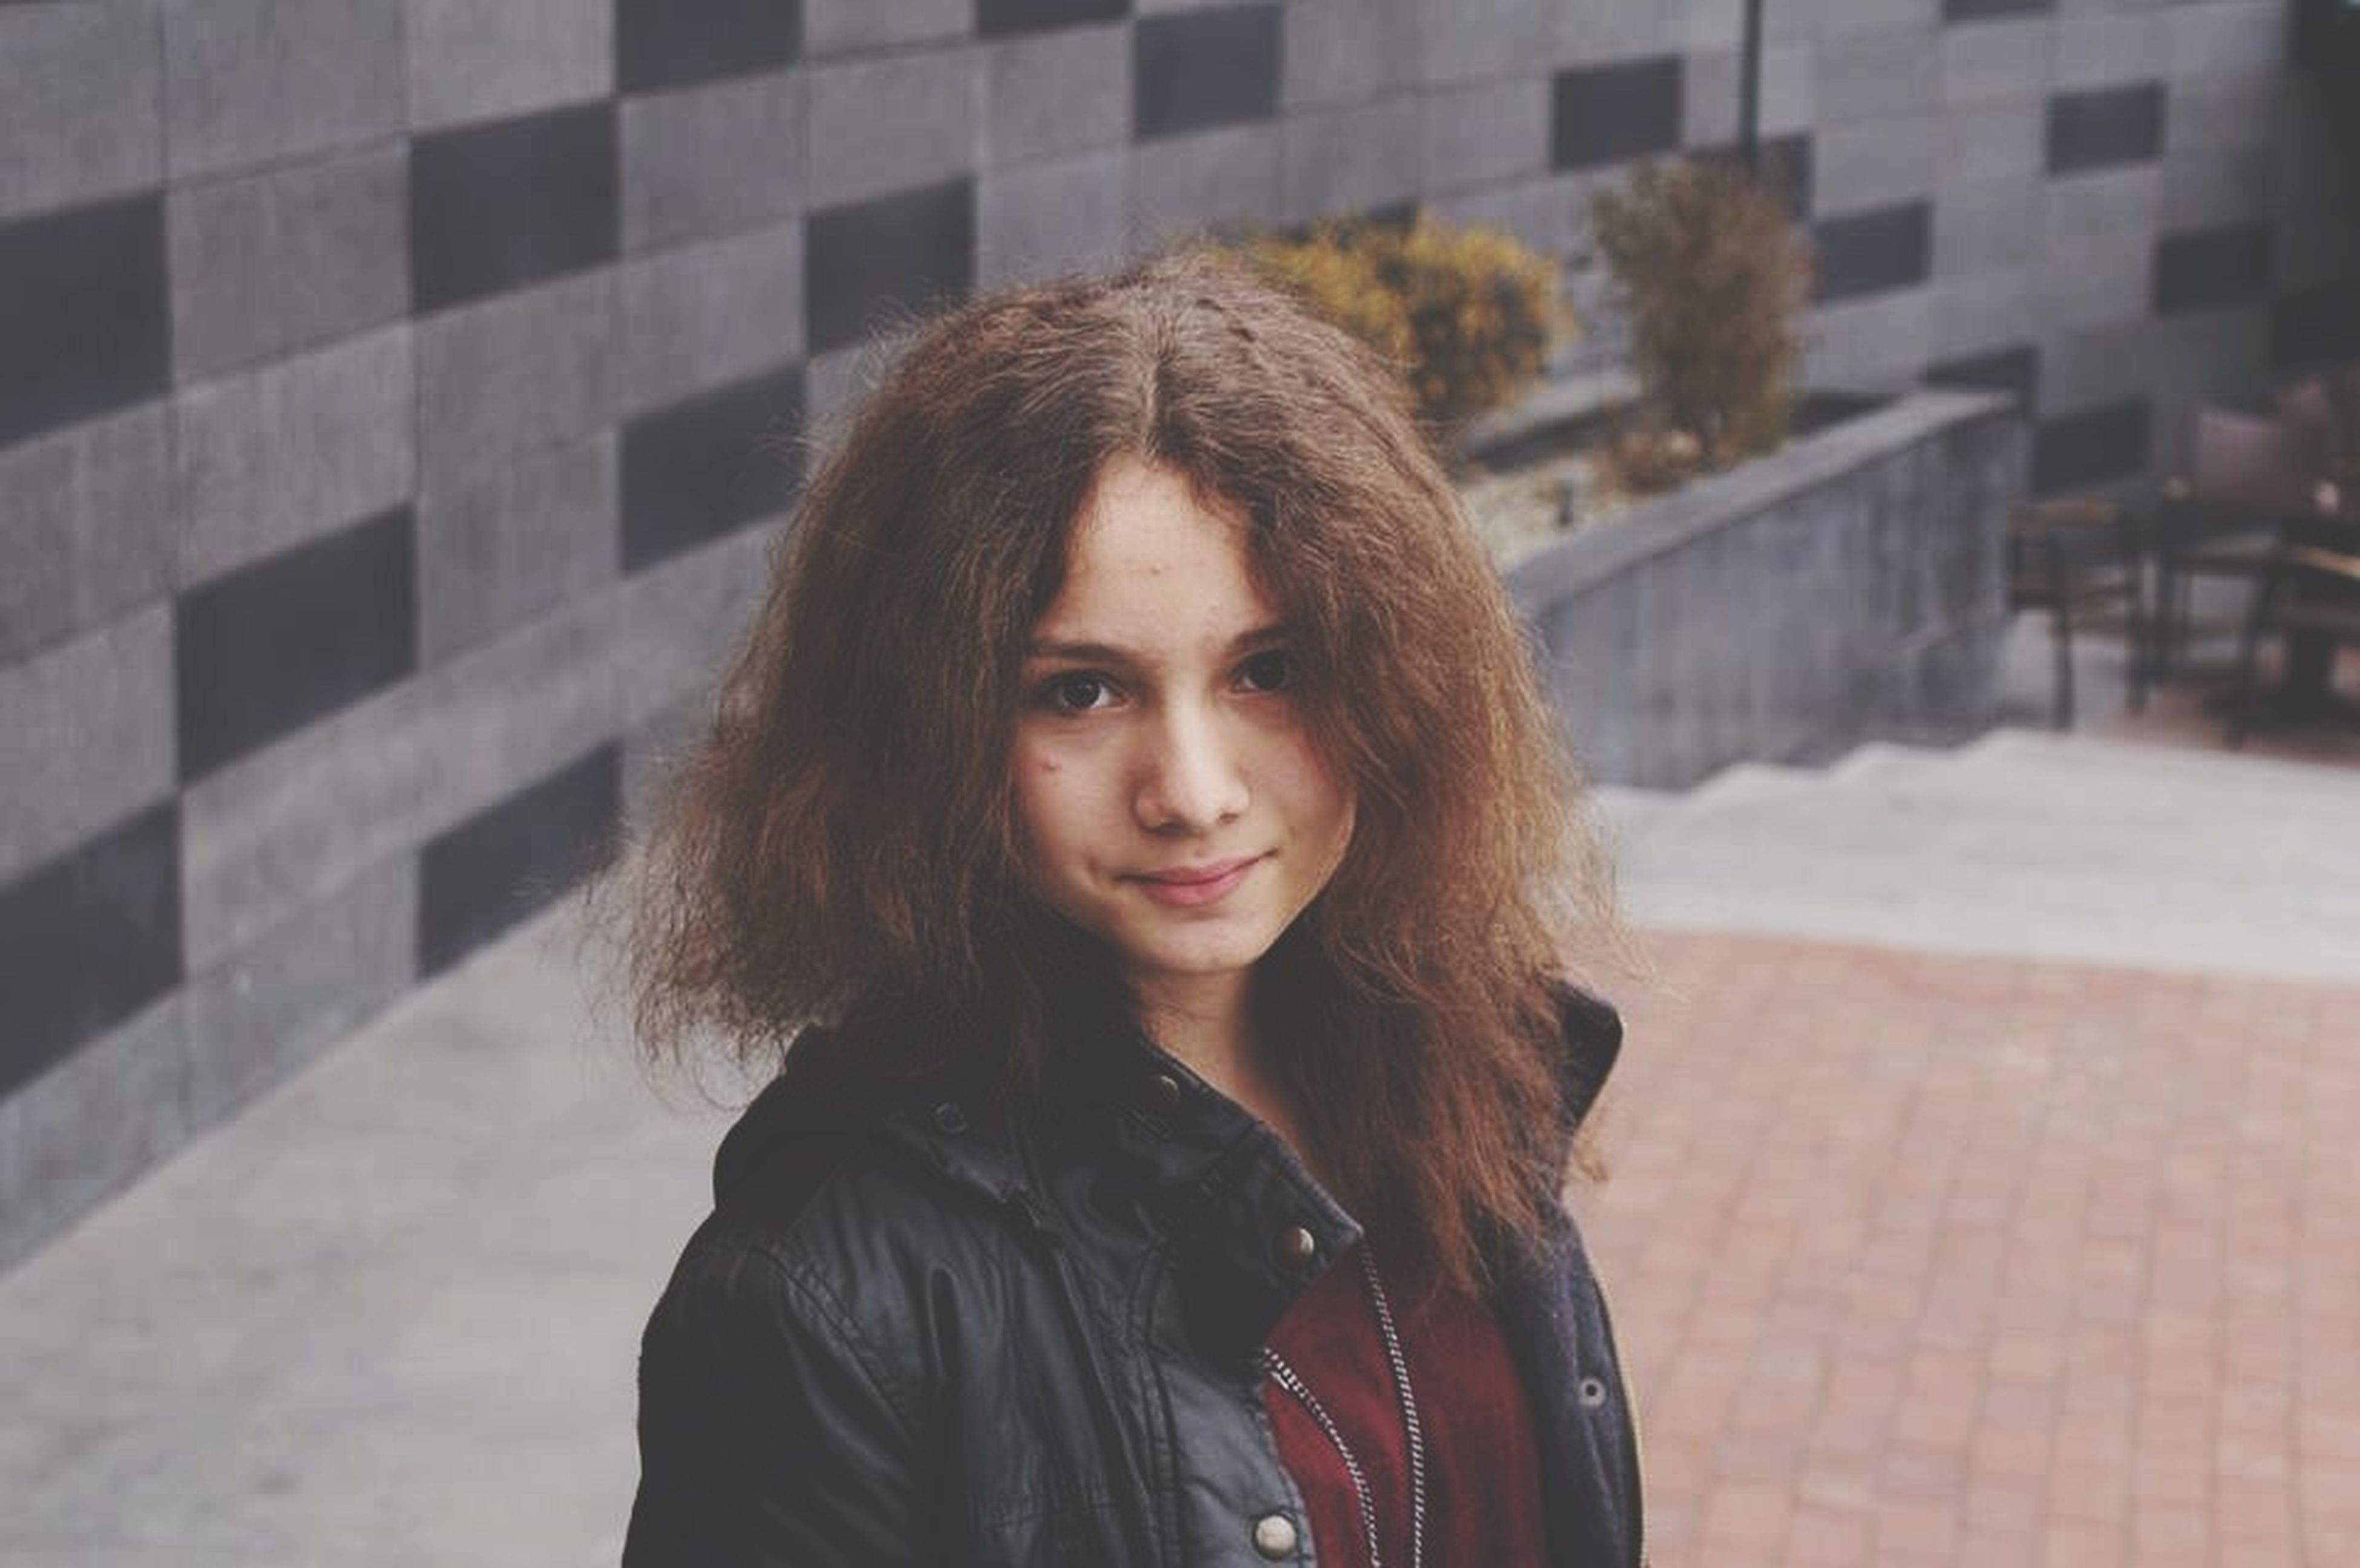 young adult, portrait, looking at camera, young women, person, lifestyles, long hair, front view, casual clothing, leisure activity, smiling, headshot, focus on foreground, standing, waist up, brown hair, black hair